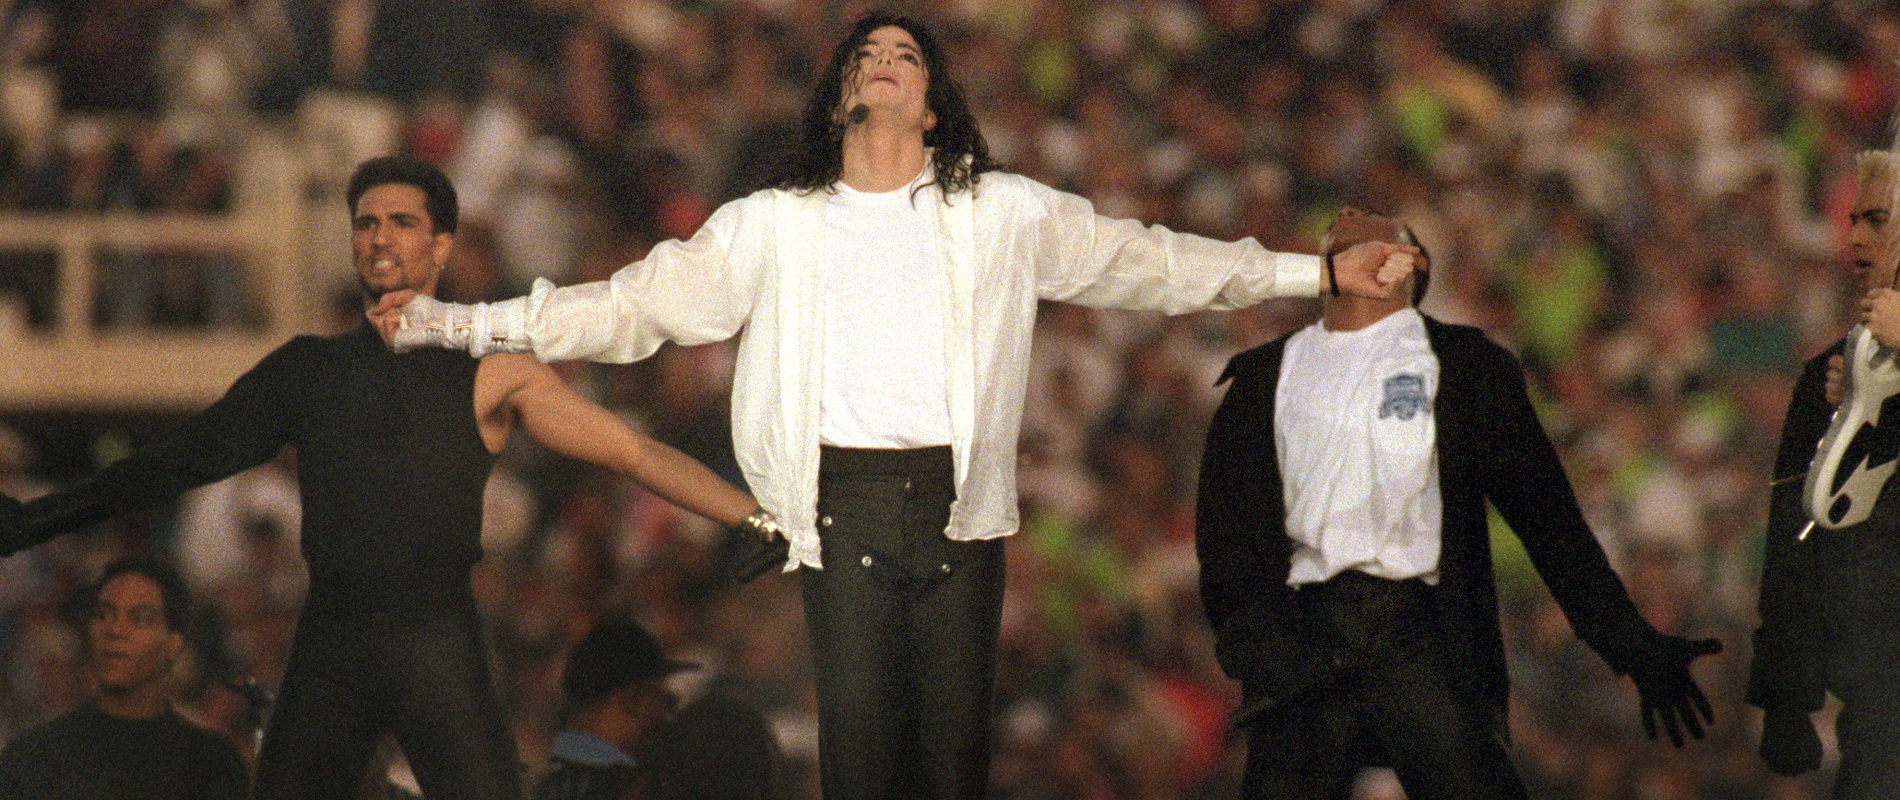 Jeff Miers writes of Michael Jackson's halftime show at Super Bowl XXVII: 'We might not have realized at the time what all of this would mean for Super Bowl halftime extravaganzas going forward.' (George Rose/Getty Images)